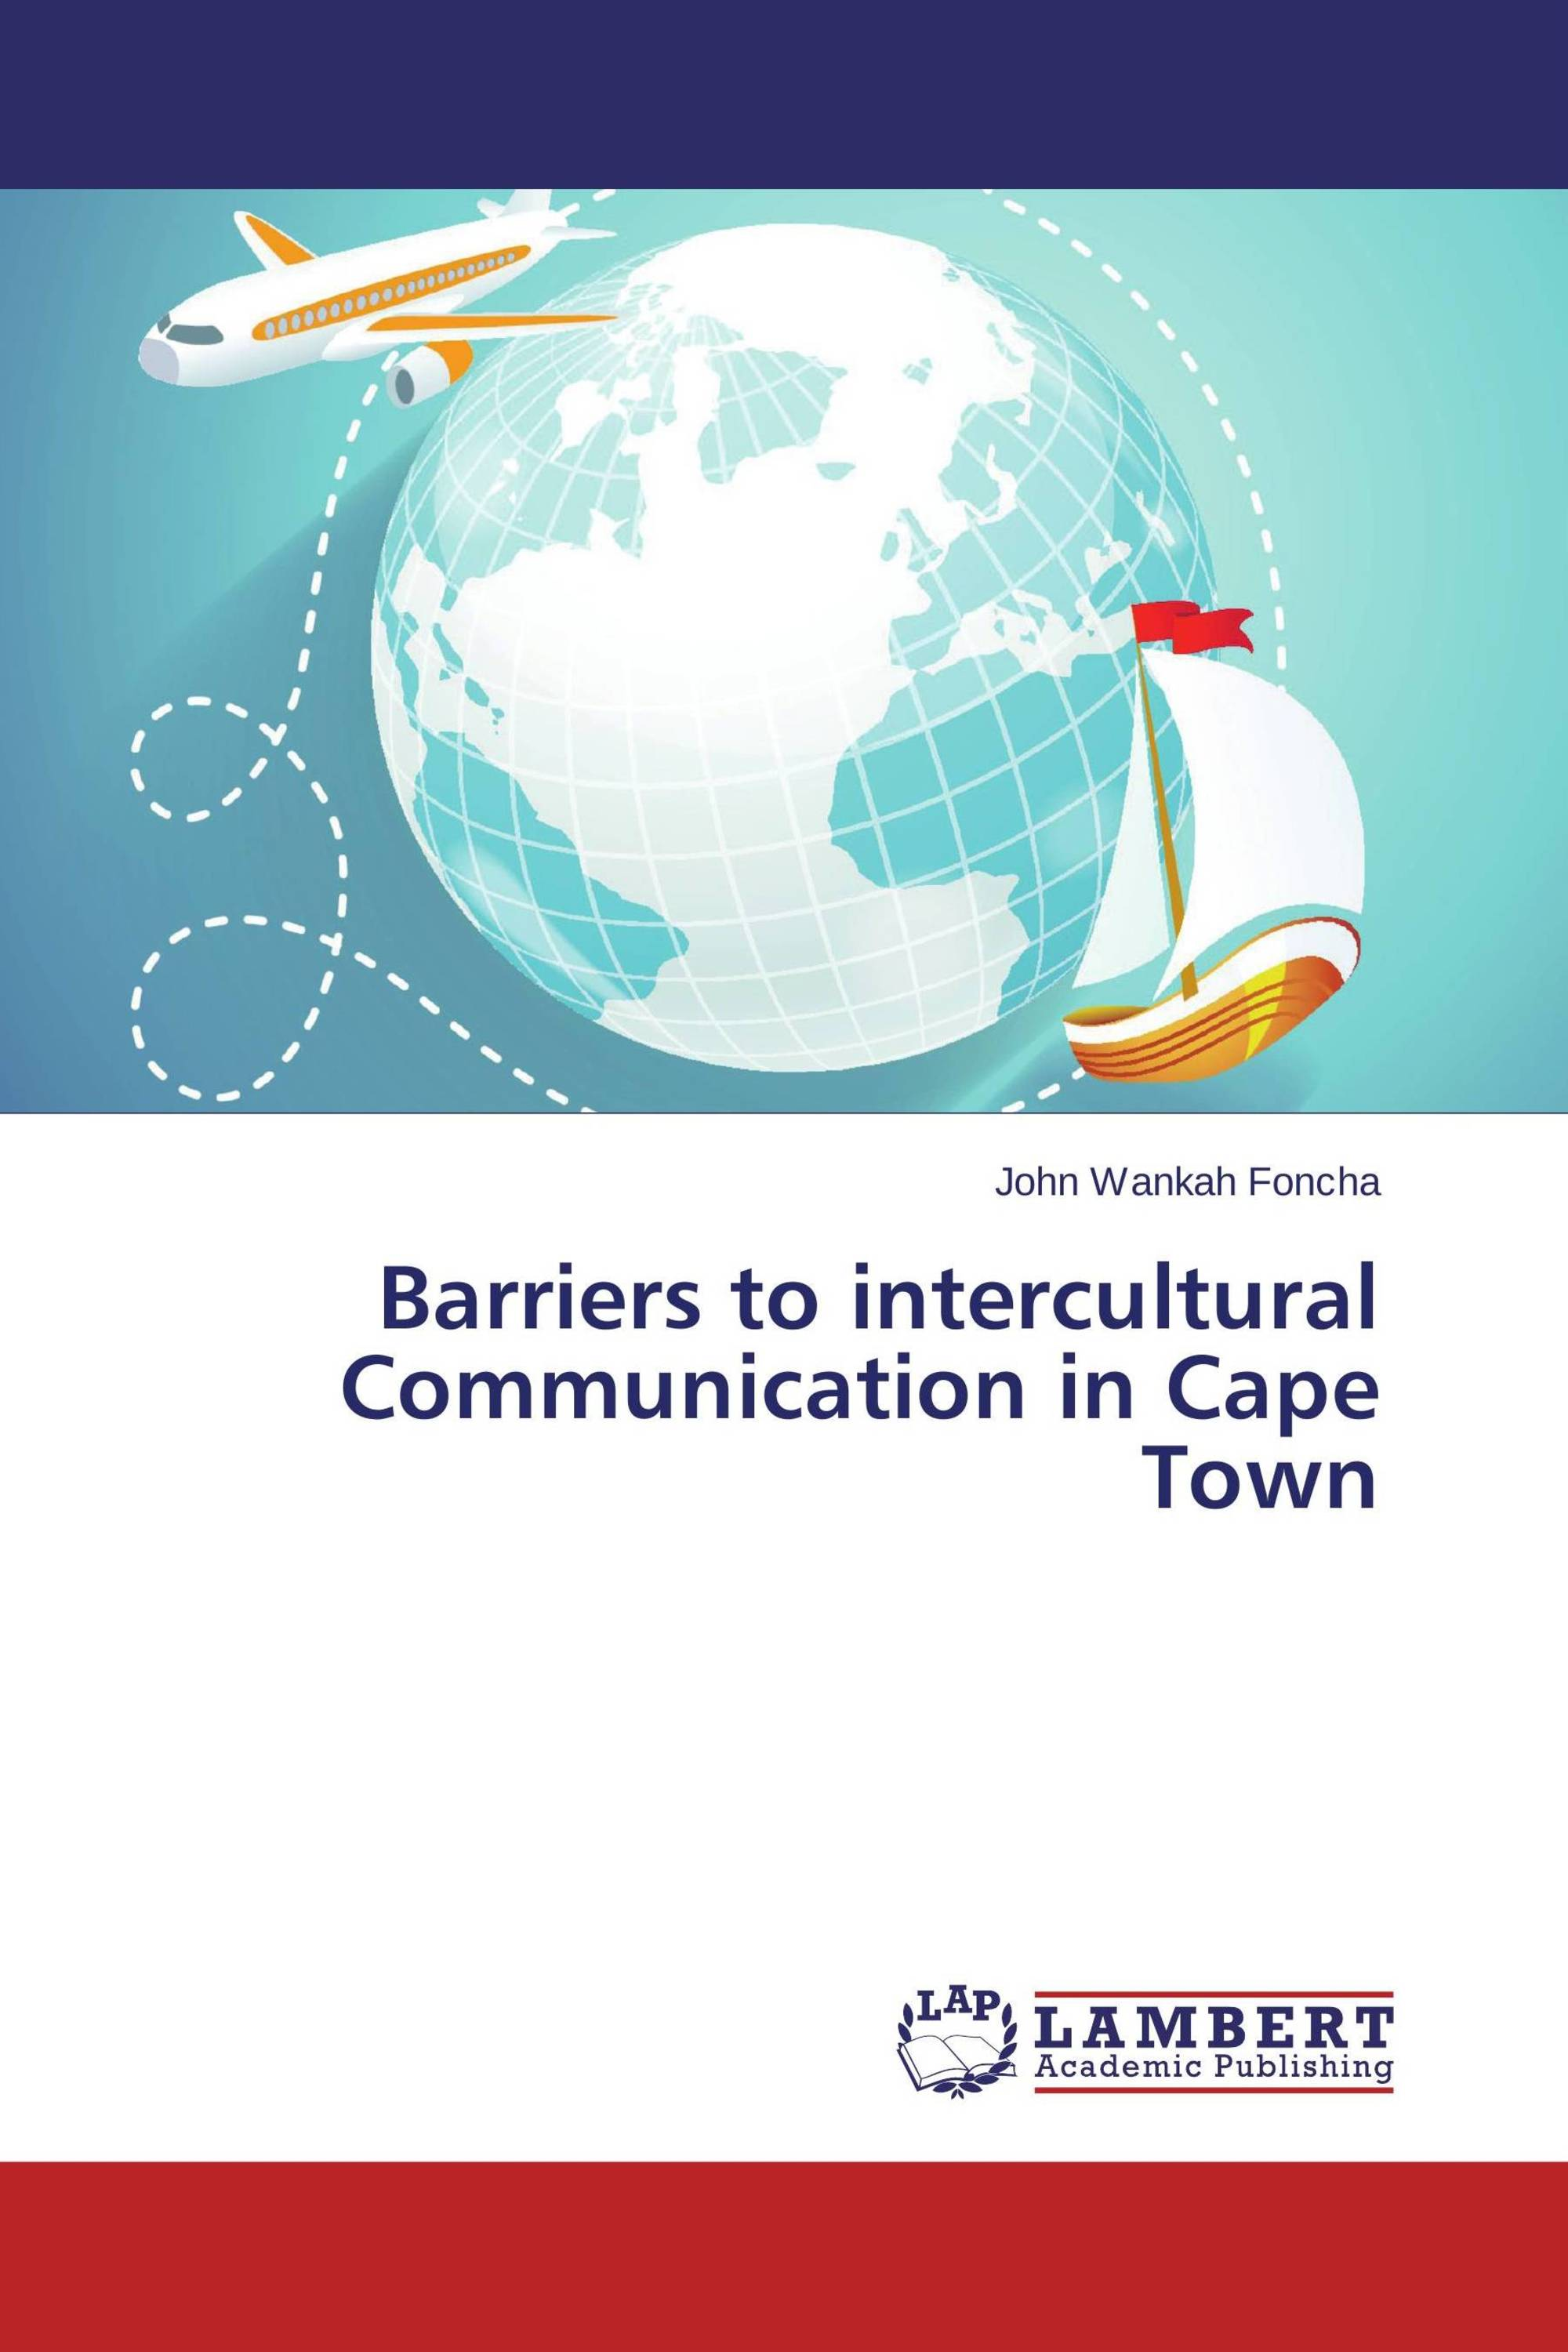 an analysis of concepts and mechanisms in communication